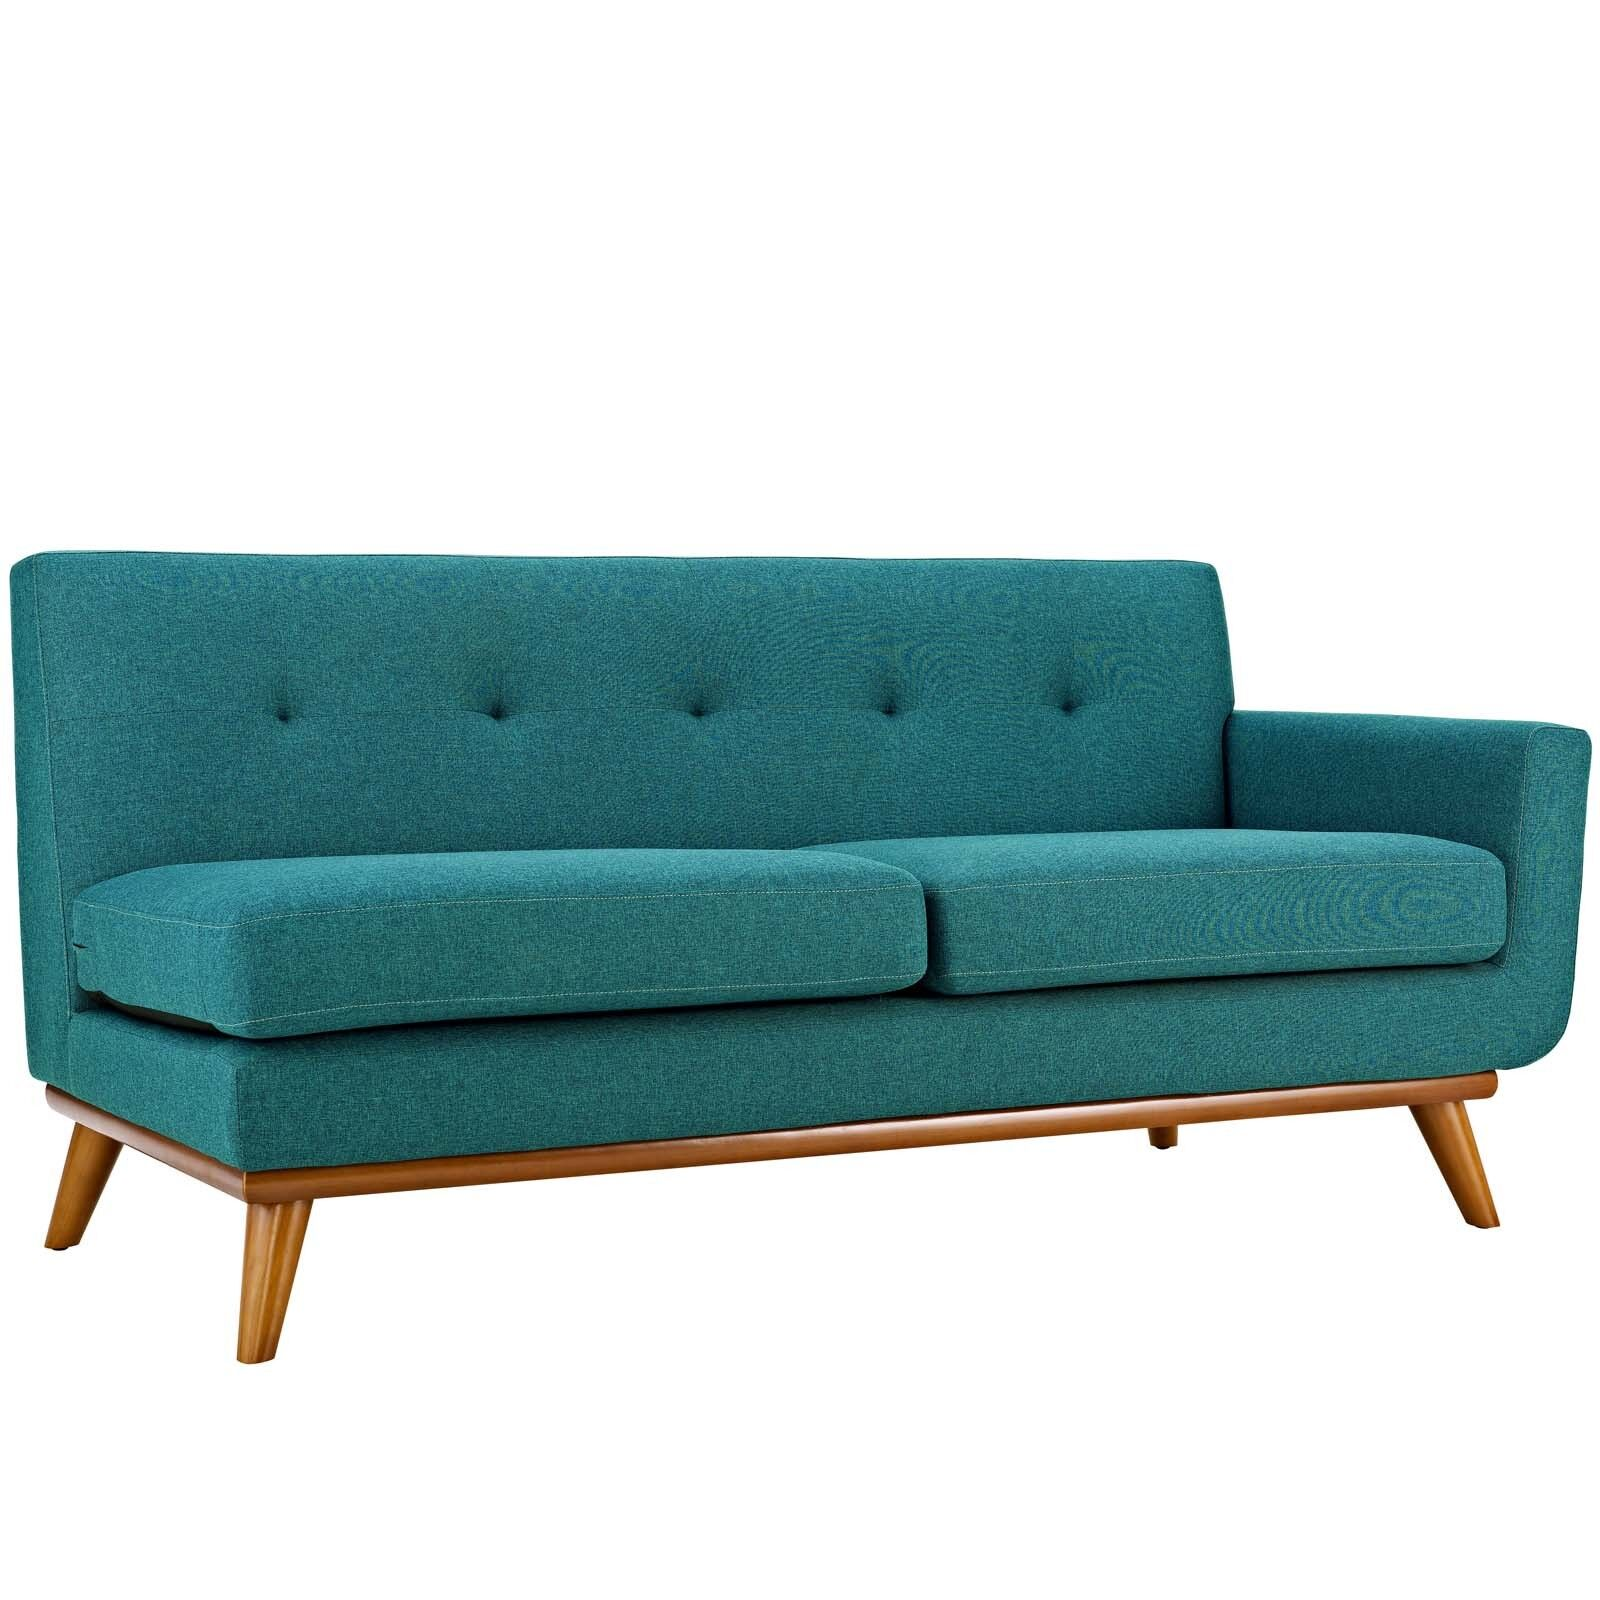 Outstanding Details About Modway Engage Mid Century Modern Upholstered Fabric Left Arm Loveseat In Teal Pabps2019 Chair Design Images Pabps2019Com